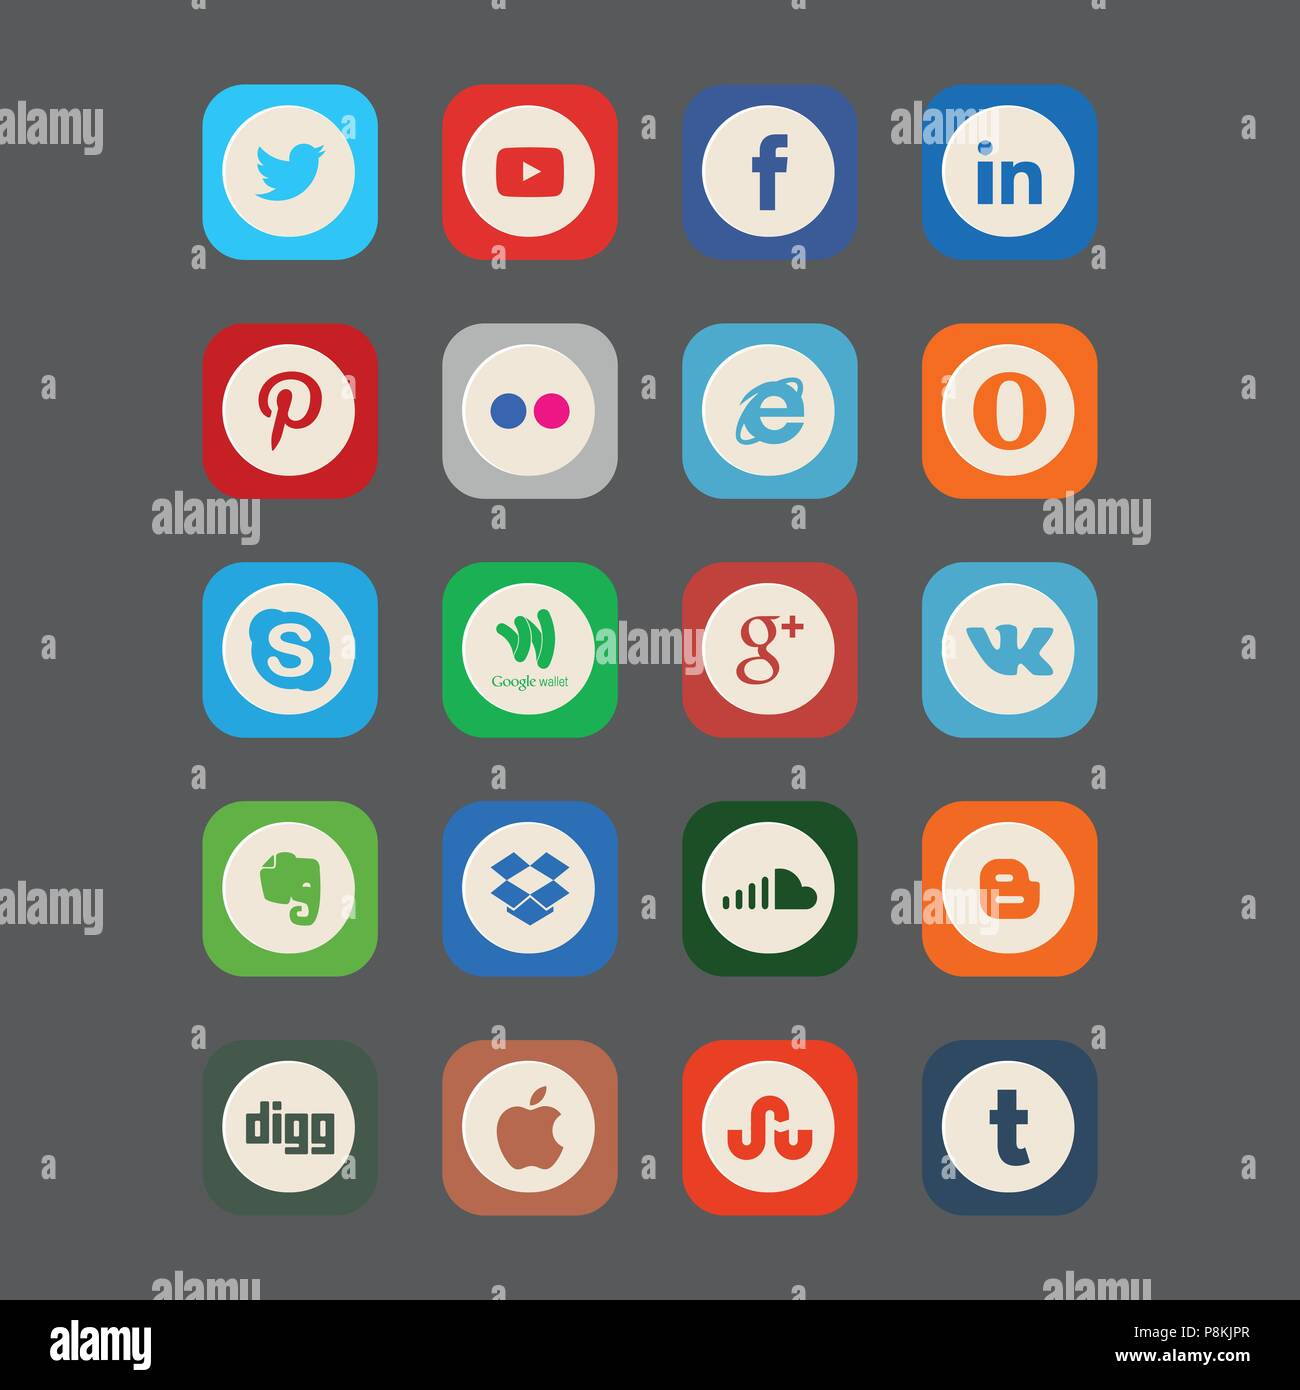 9df938f3c8bd Set of most popular social media icons: Pinterest, Twitter, YouTube,  WhatsApp, Snapchat, Facebook,Skype, Instagram, Android, Flickr, and others  logos